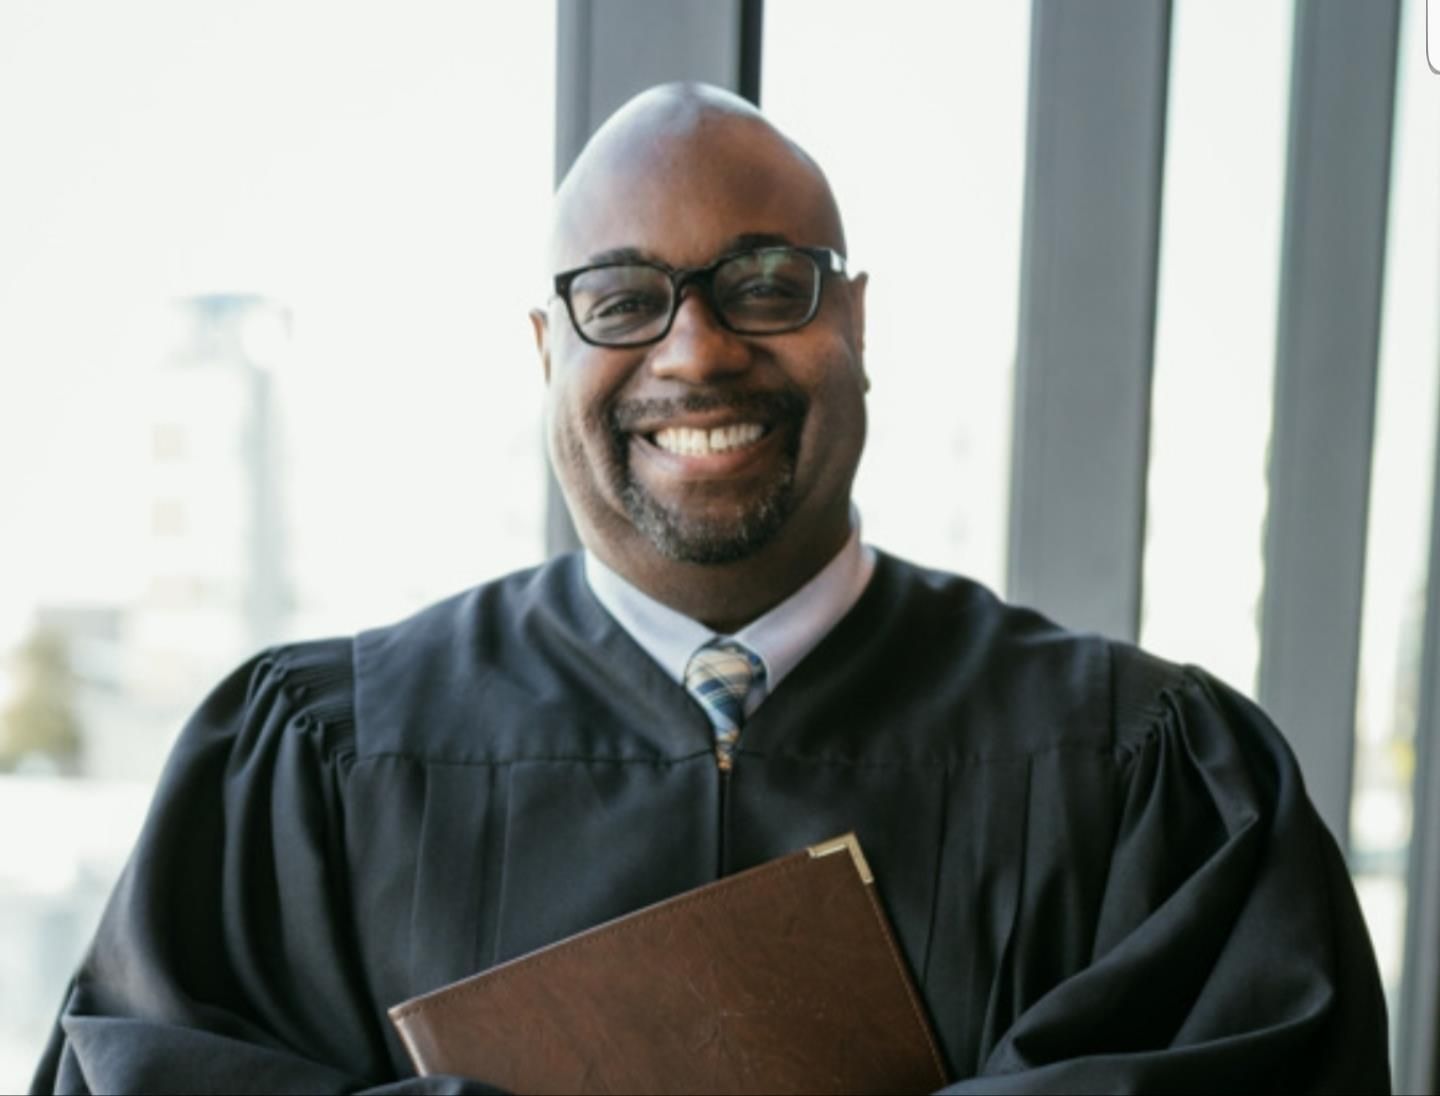 Convocation Event: Unconscious Bias - Knowing What You Don't Know presented by Judge Derek Mosley